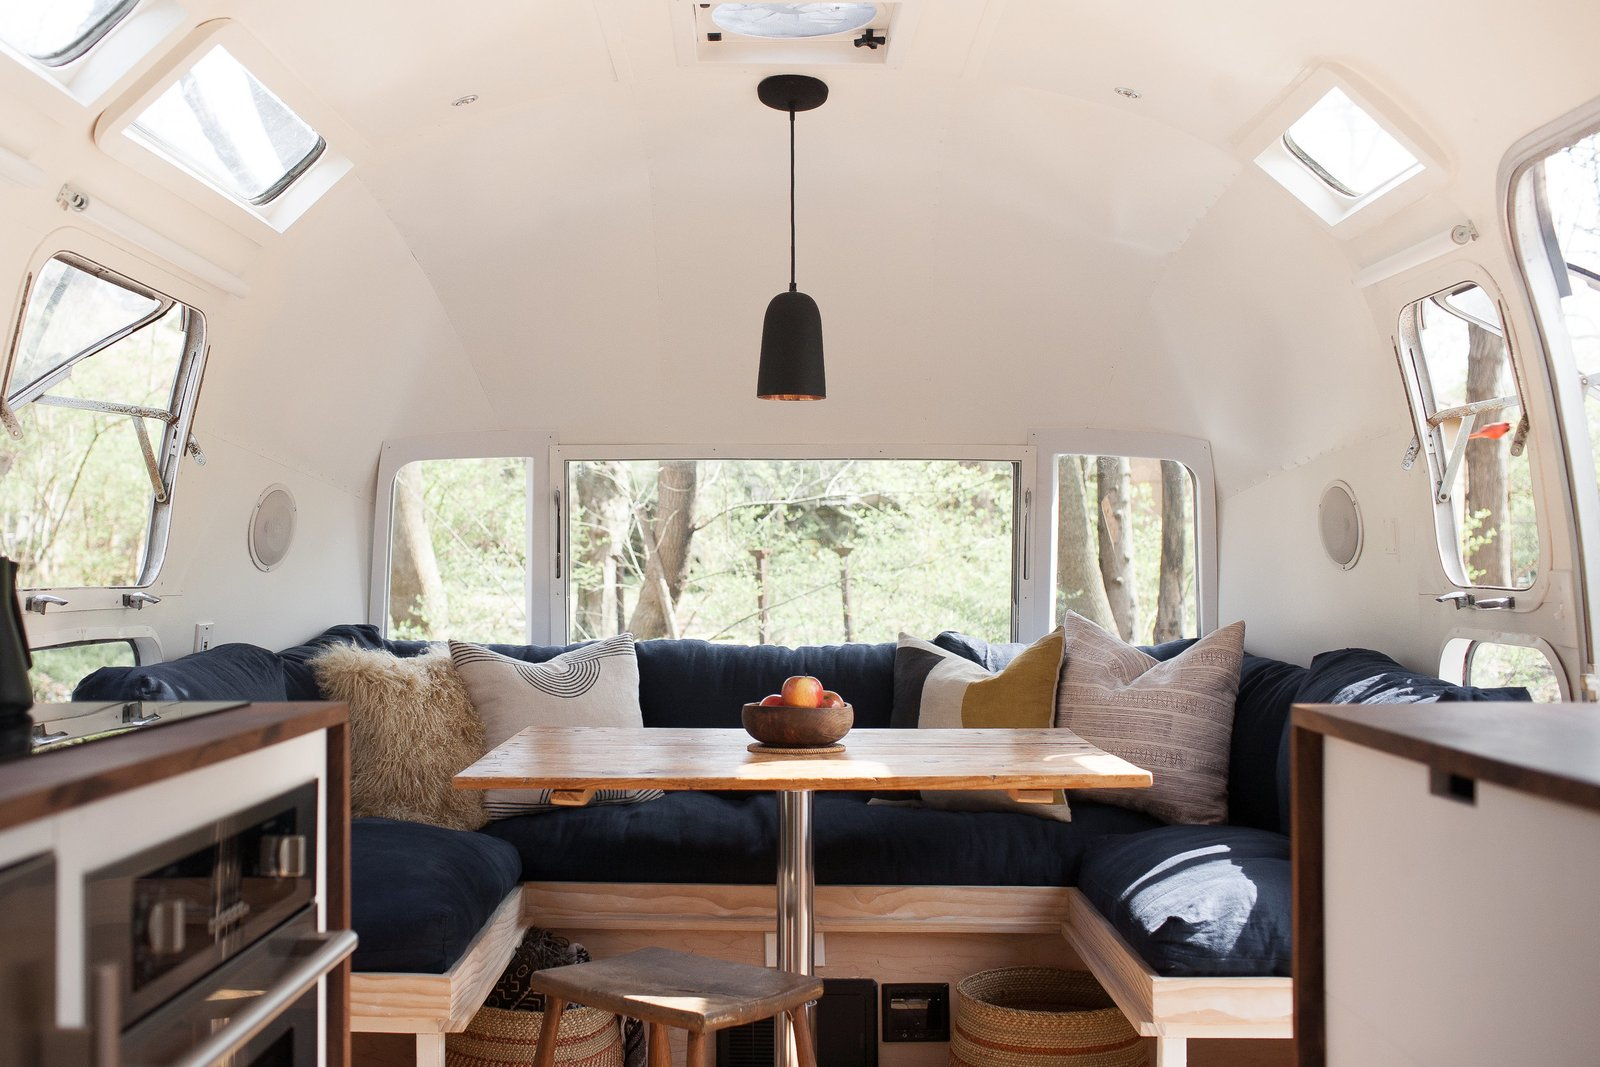 Ellen Prasse, an art teacher, and her partner, artist and writer Kate Oliver, transformed their lives and this 1977 Airstream over the course of a year, bringing the trailer back to life and giving it a classic but modern redo. Small touches, like a matte black faucet and light fixture paired with stainless steel appliances, along with a mixing of dark and light wood finishes prevent the space from feeling too matchy-matchy and overwhelming. Tagged: Dining Room, Bench, Pendant Lighting, Table, and Stools.  Photo 2 of 8 in These 7 Vintage Airstreams Were Transformed Into Modern Escapes